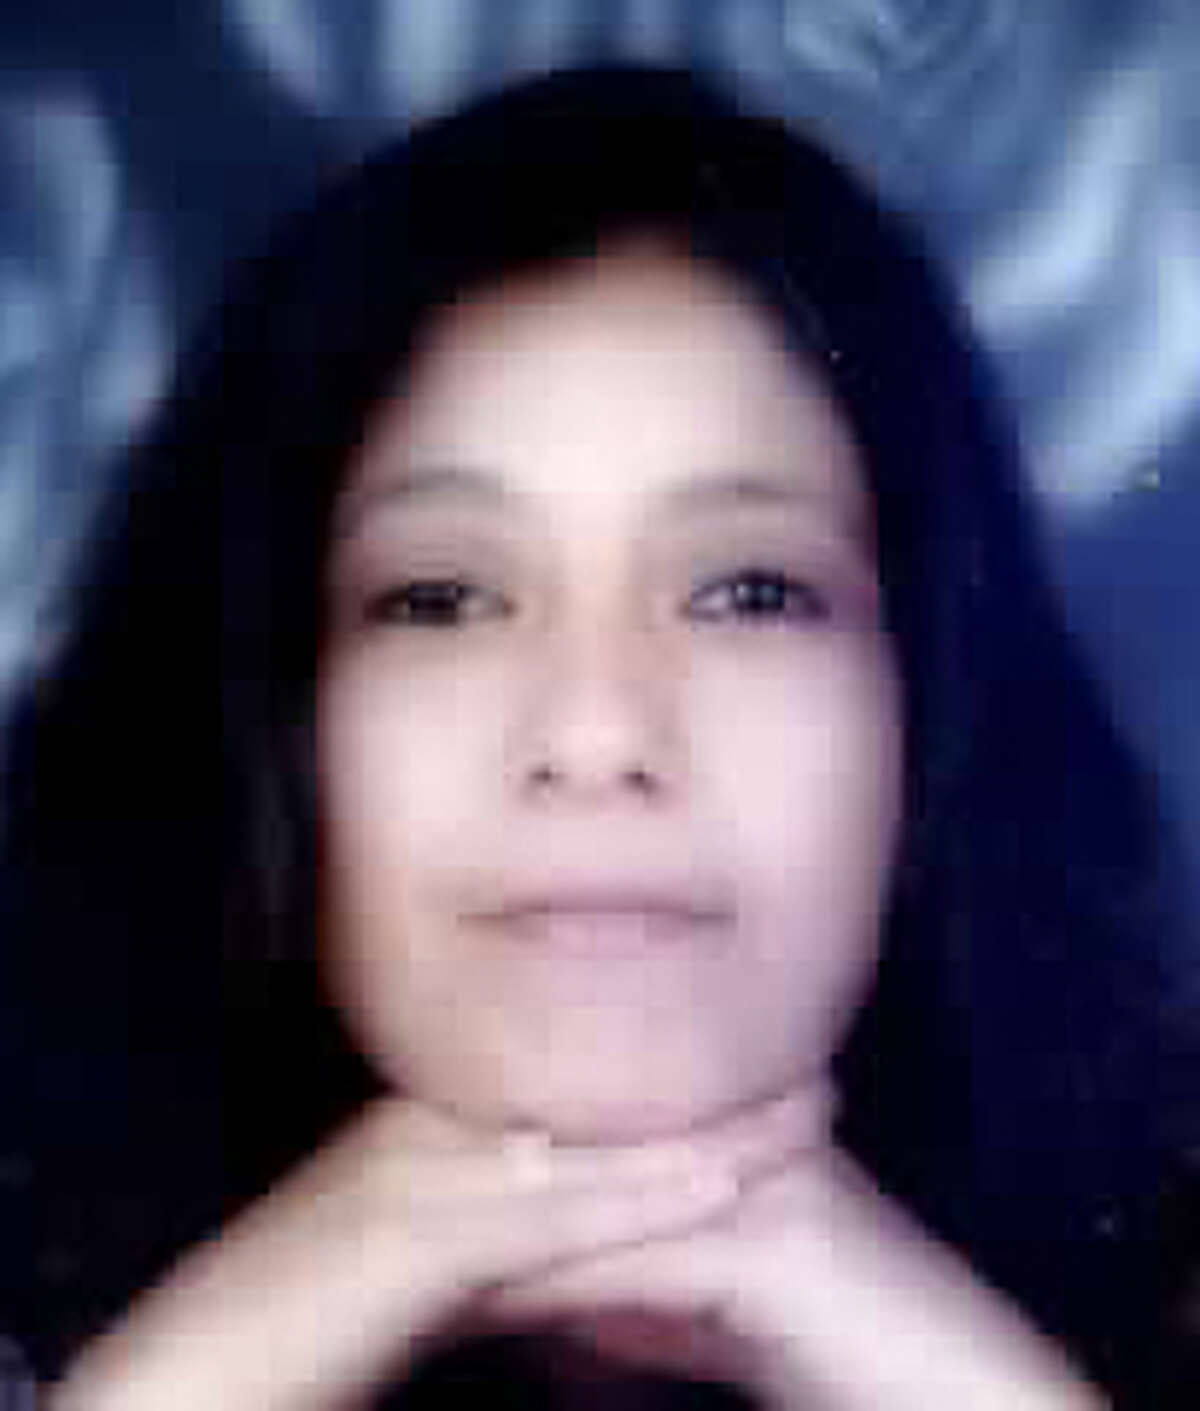 Rosa Maria Rosado , 37 , a single mother, was found dead in shallow grave near UTSA on April 5, 2001.